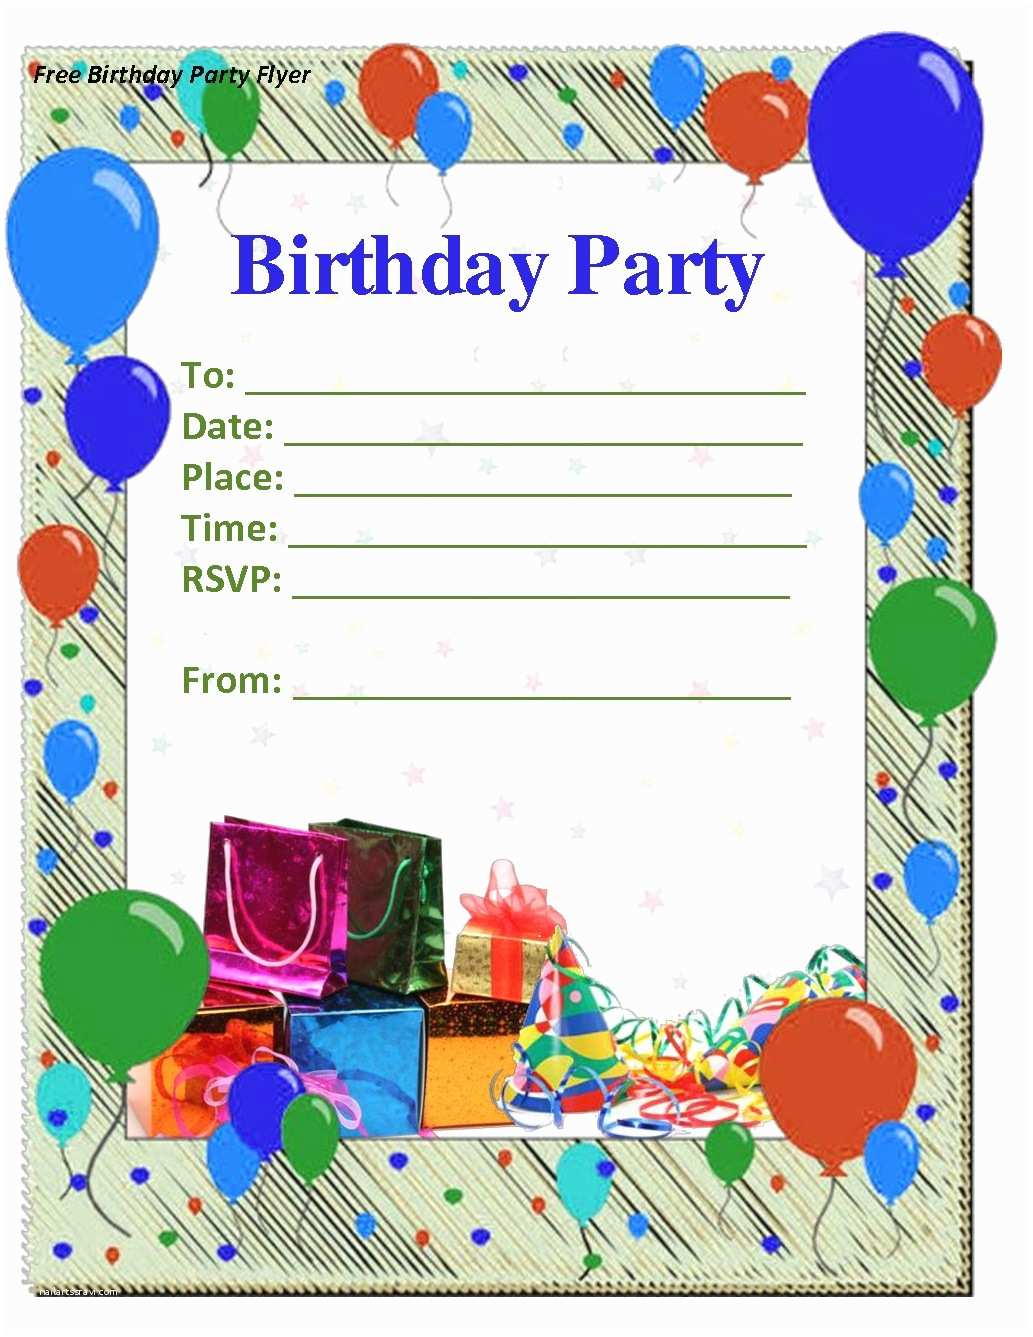 Birthday Invitation Cards 50 Free Birthday Invitation Templates – You Will Love